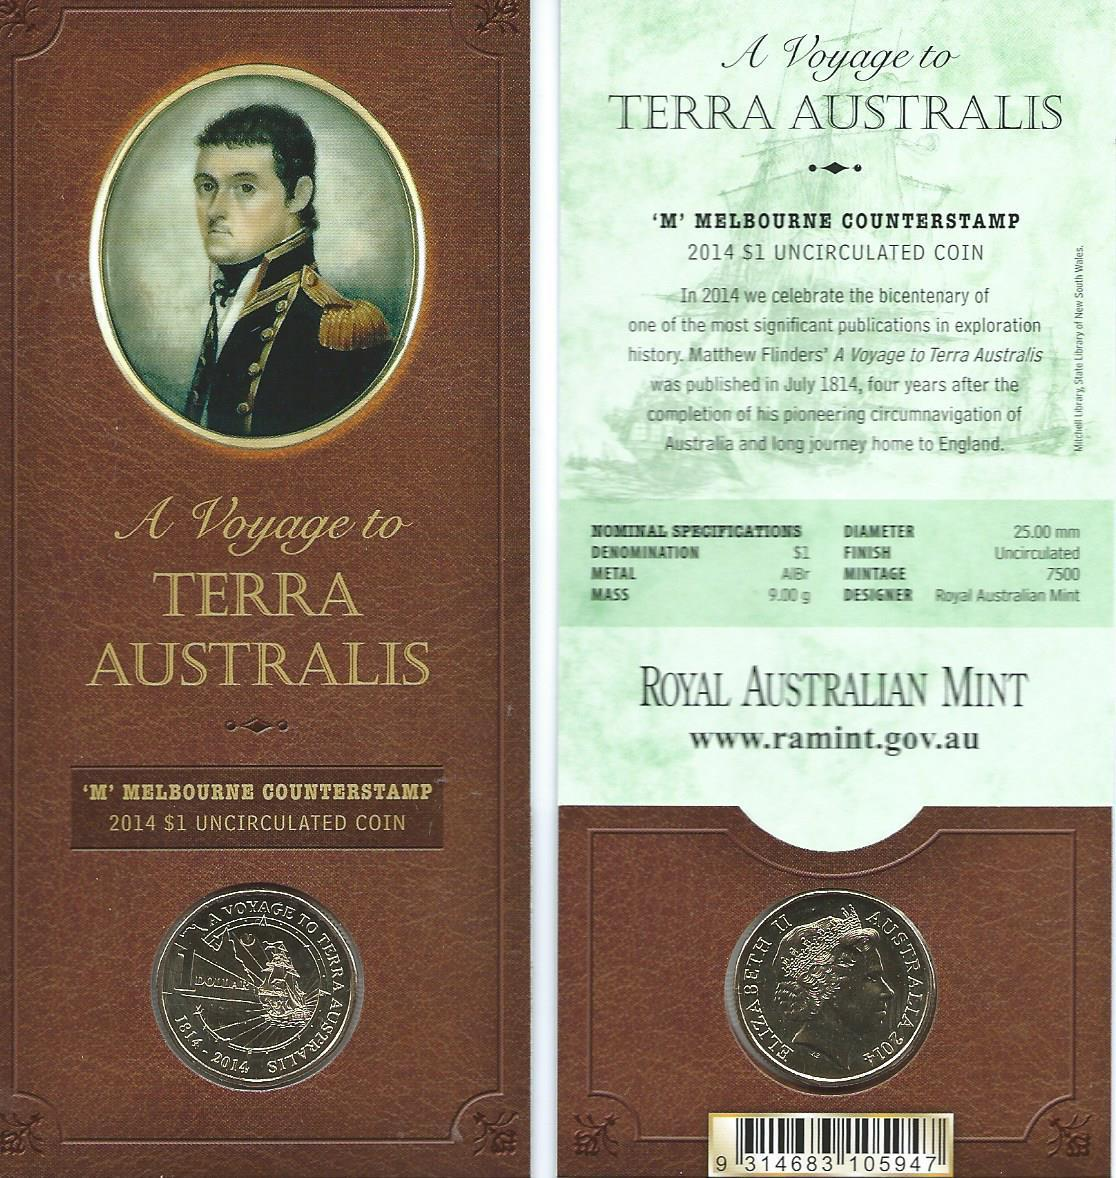 Thumbnail for 2014 Terra Australis Melbourne Counterstamp $1.00 on Card